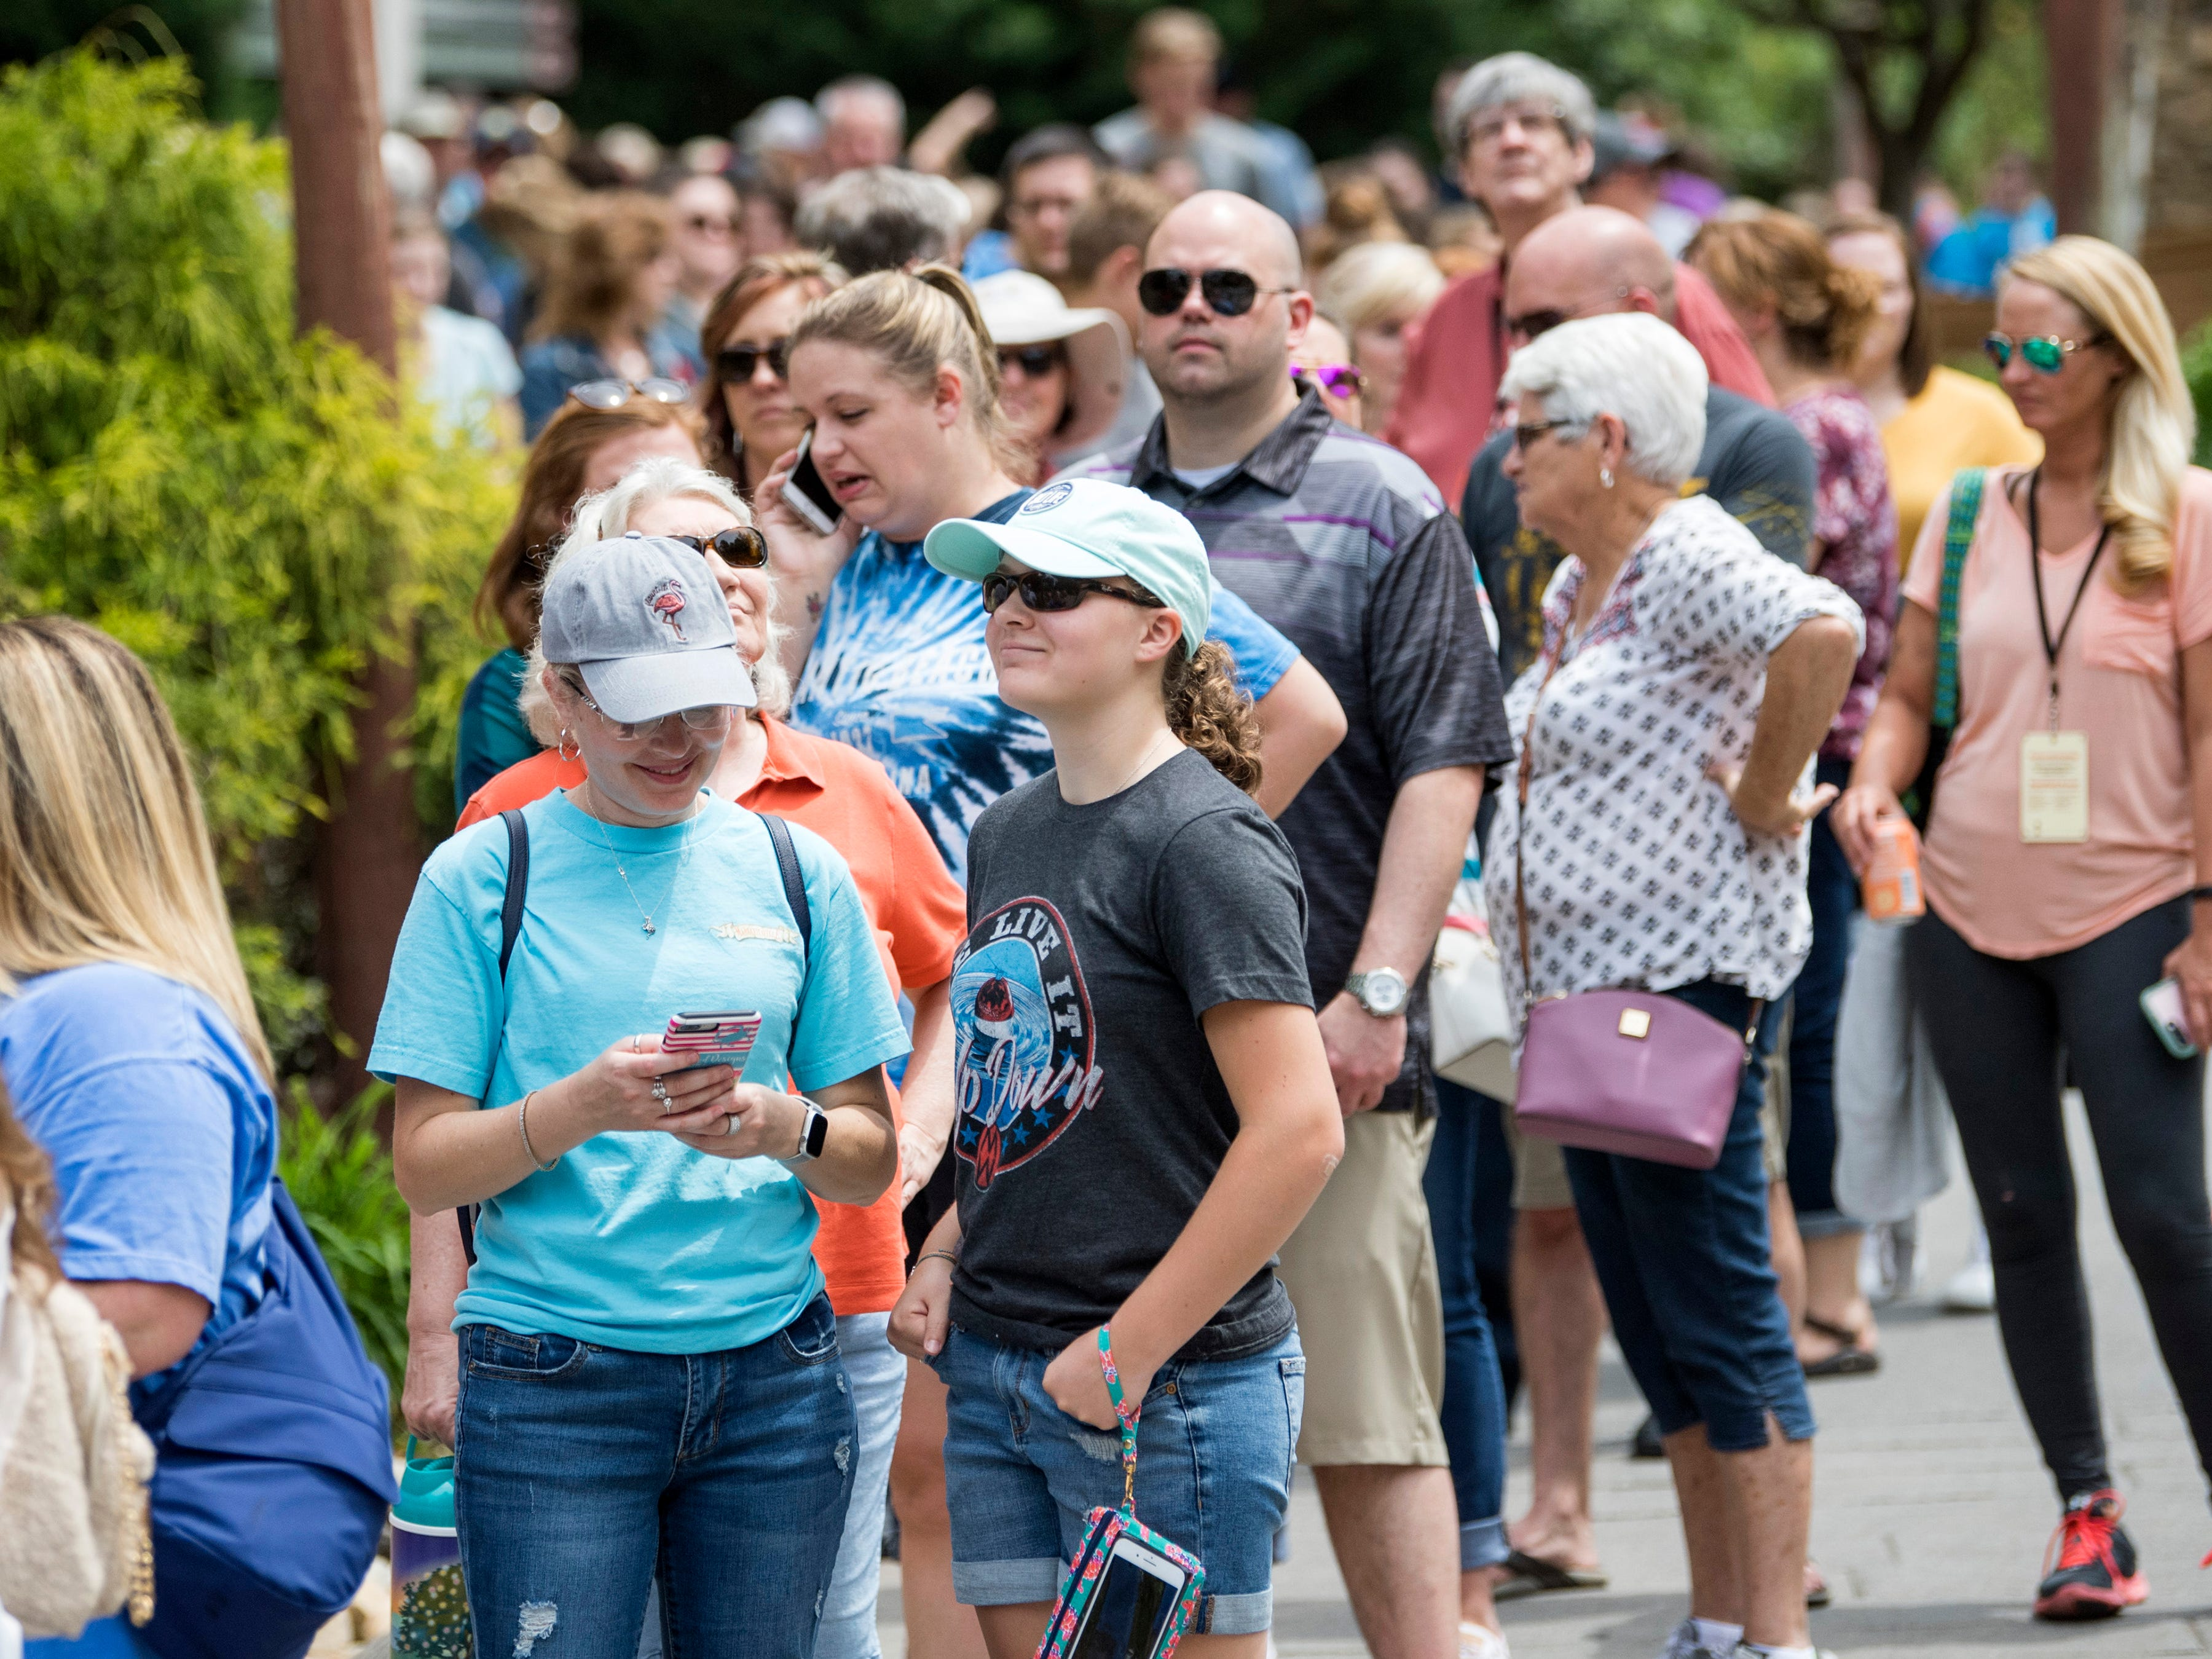 Guests wait in line to enter Dollywood's new Wildwood Grove expansion on Friday, May 10, 2019.